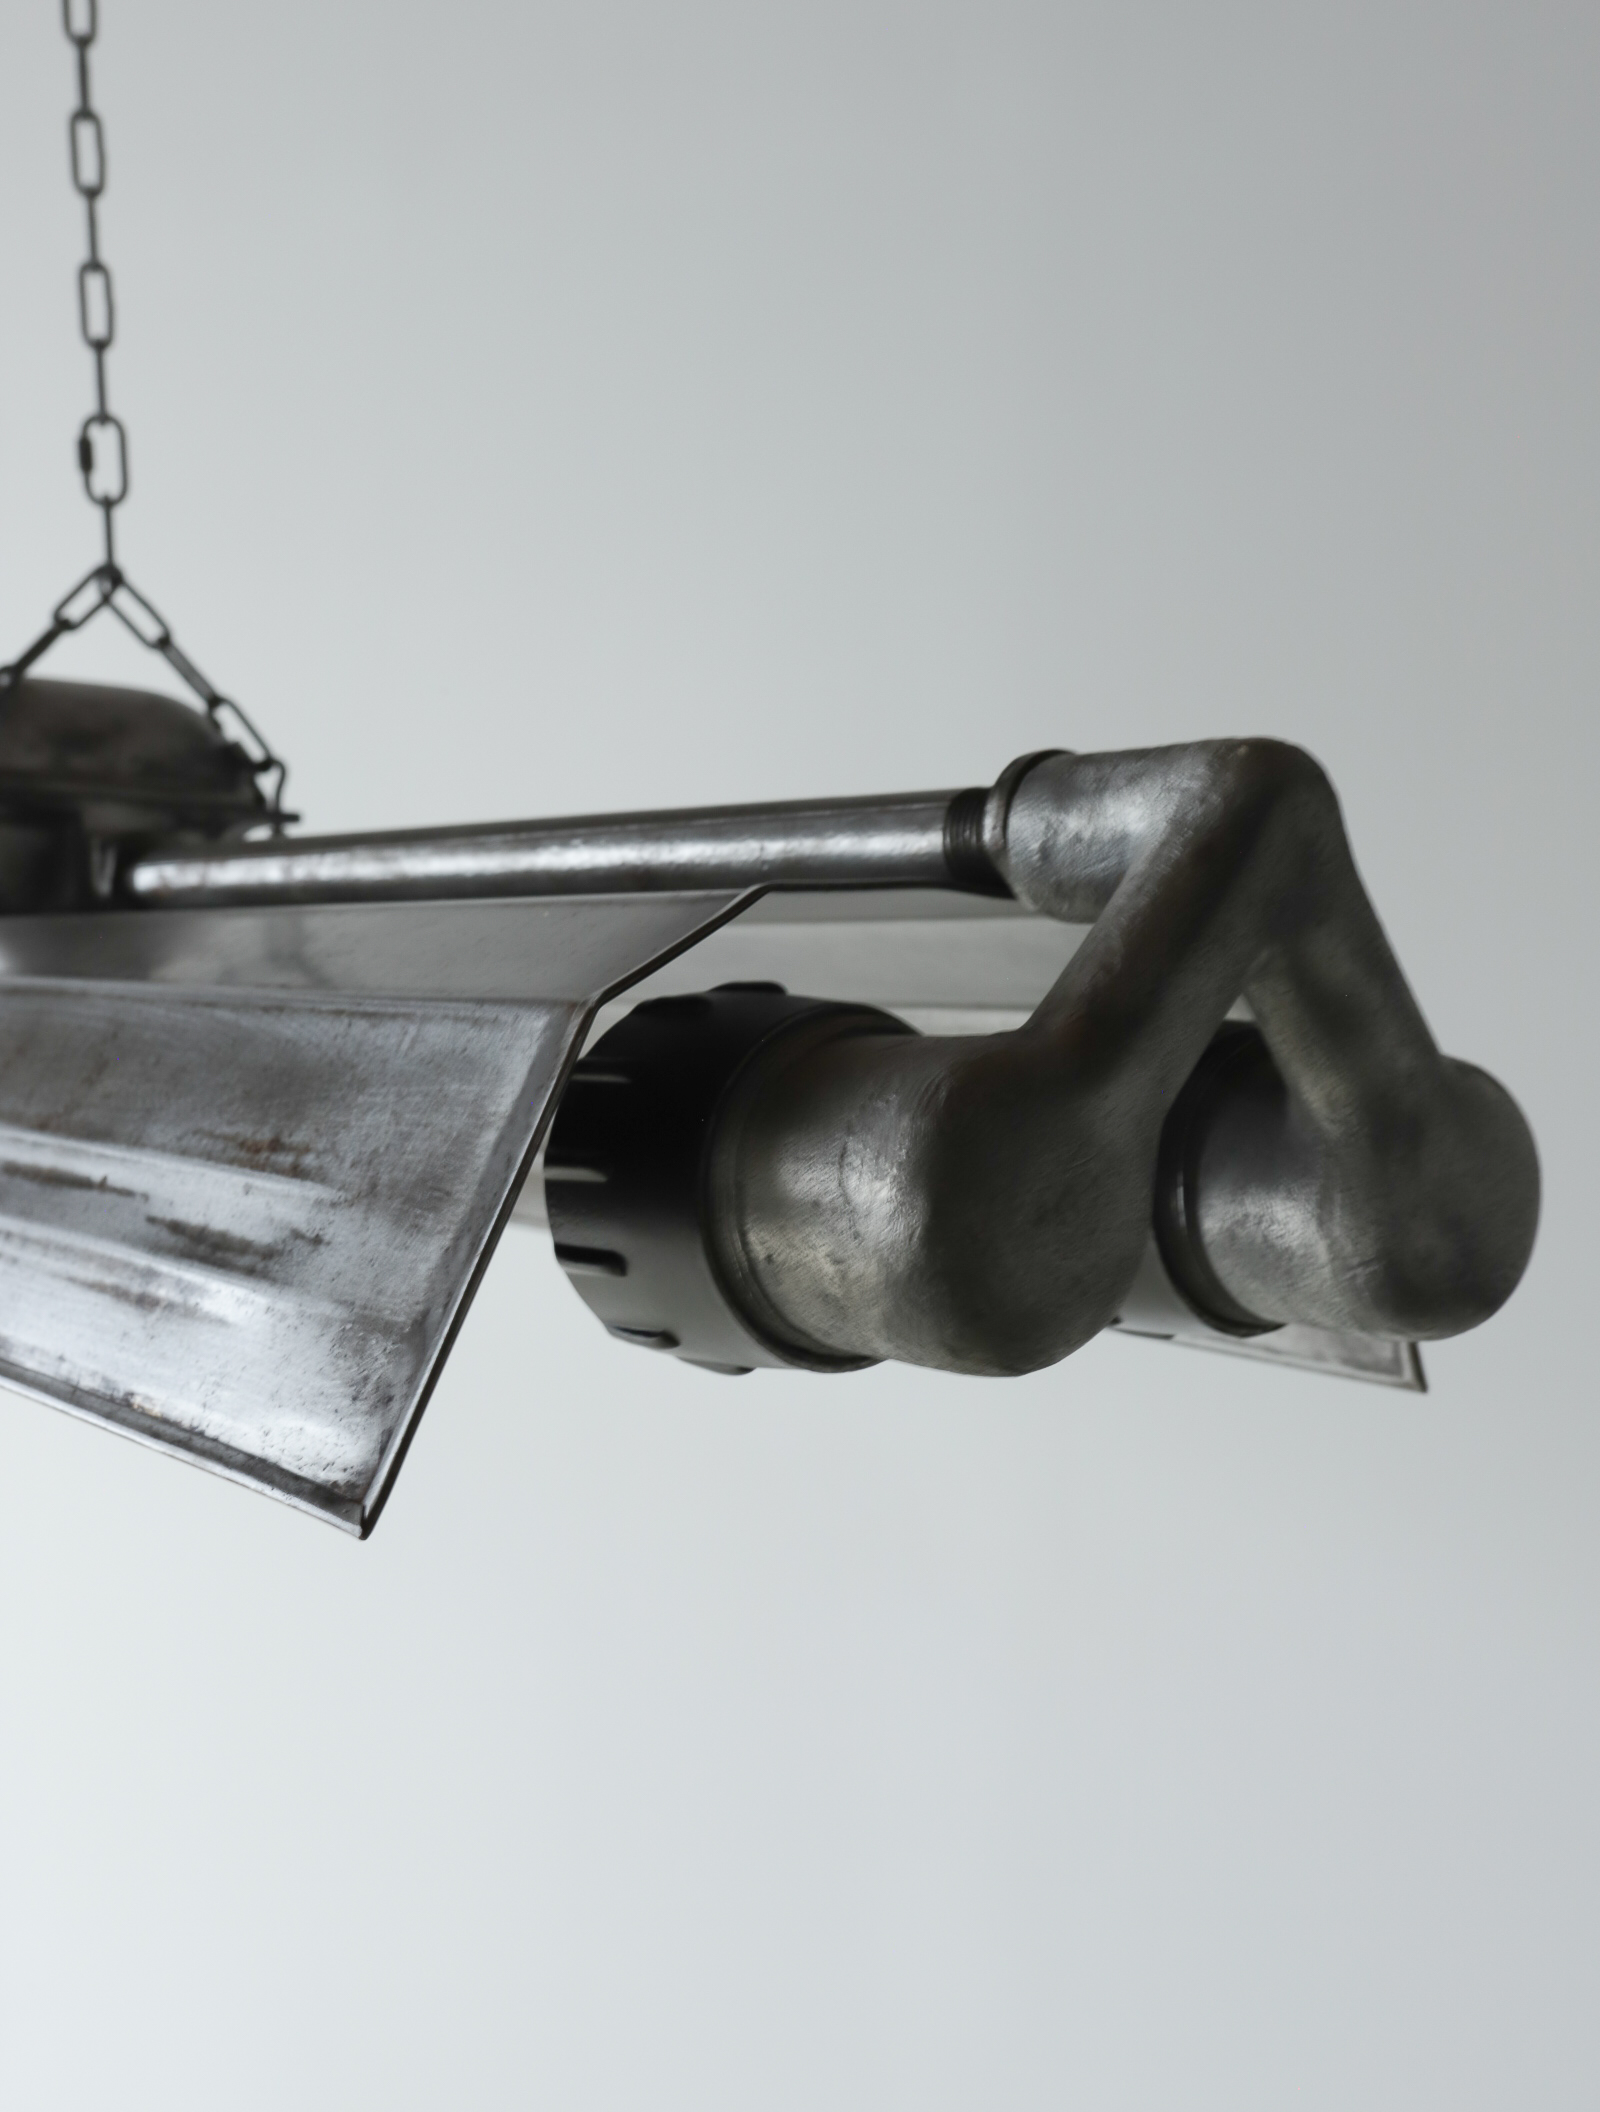 Industrial Tube Light from Poland